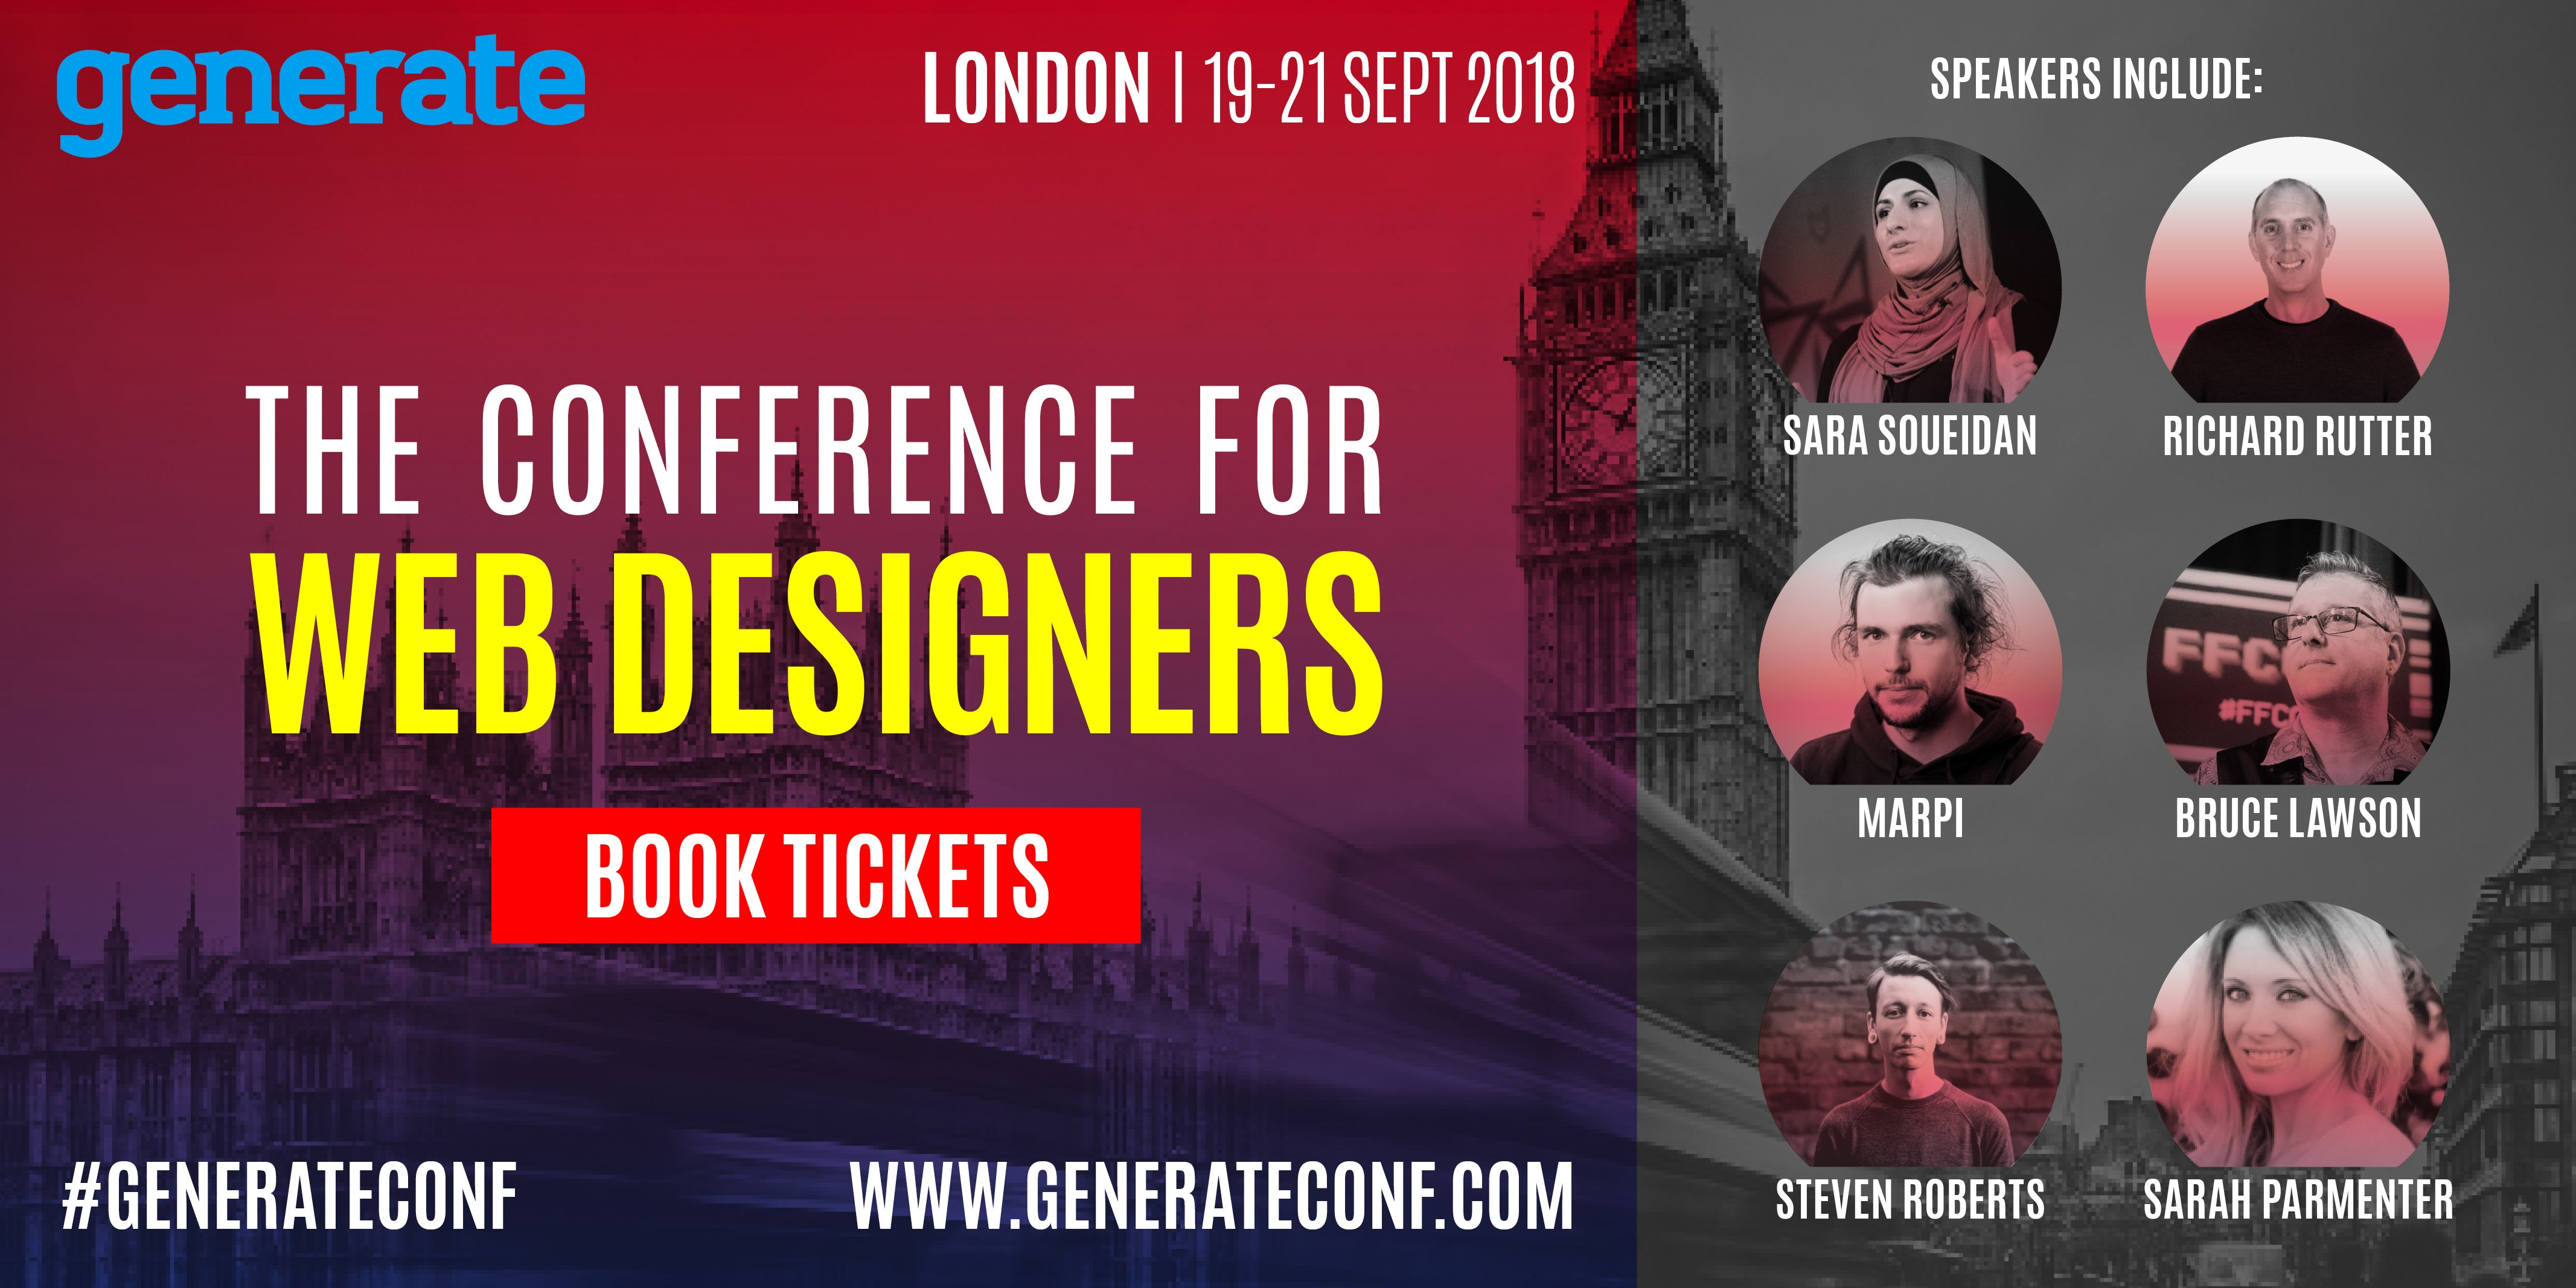 An image displaying the speakers appearing at Generate London and providing a link to buy tickets.